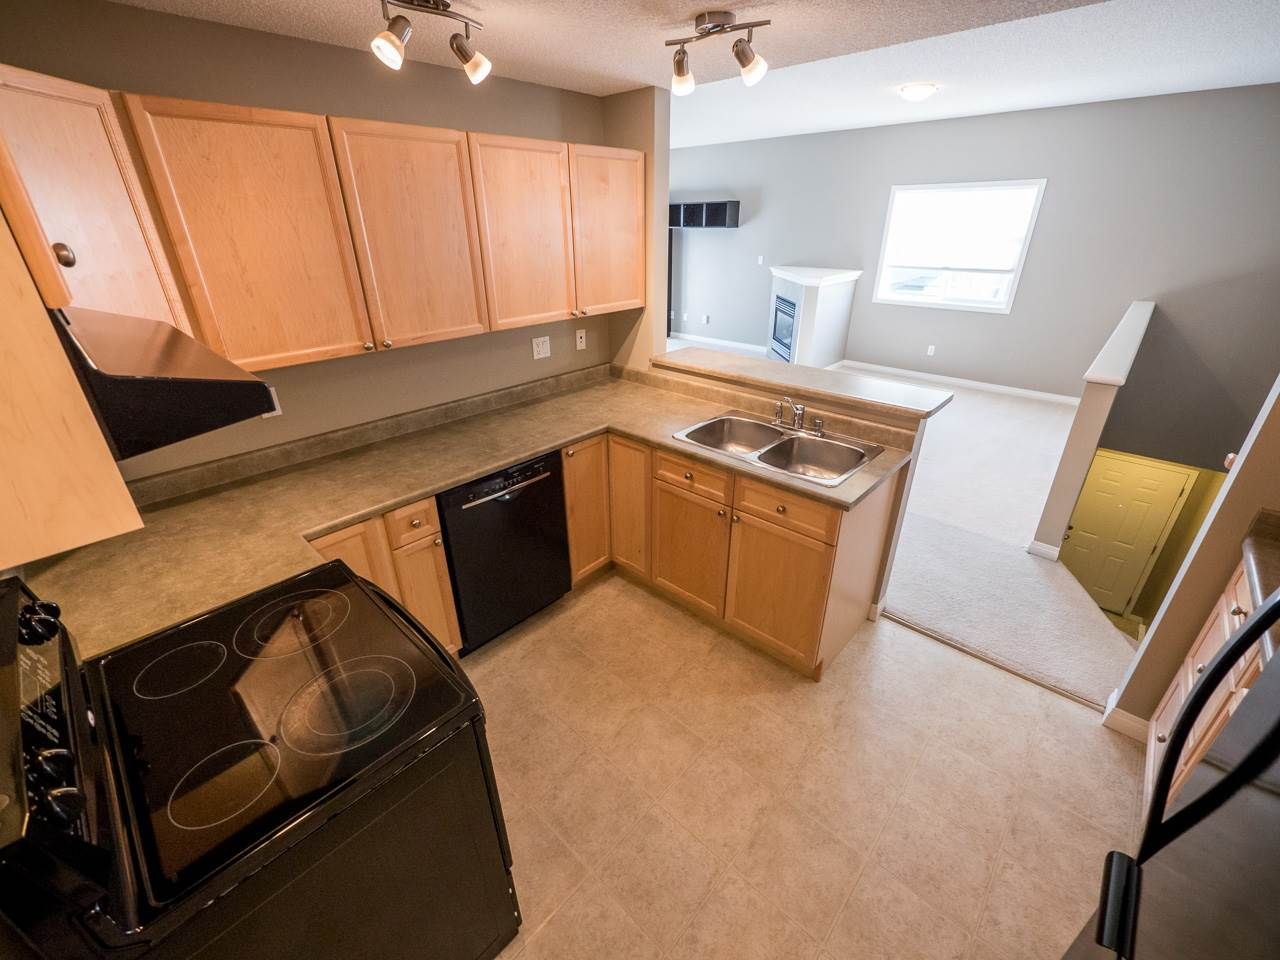 Photo 5: 71 3040 SPENCE Way in Edmonton: Zone 53 Townhouse for sale : MLS(r) # E4063695